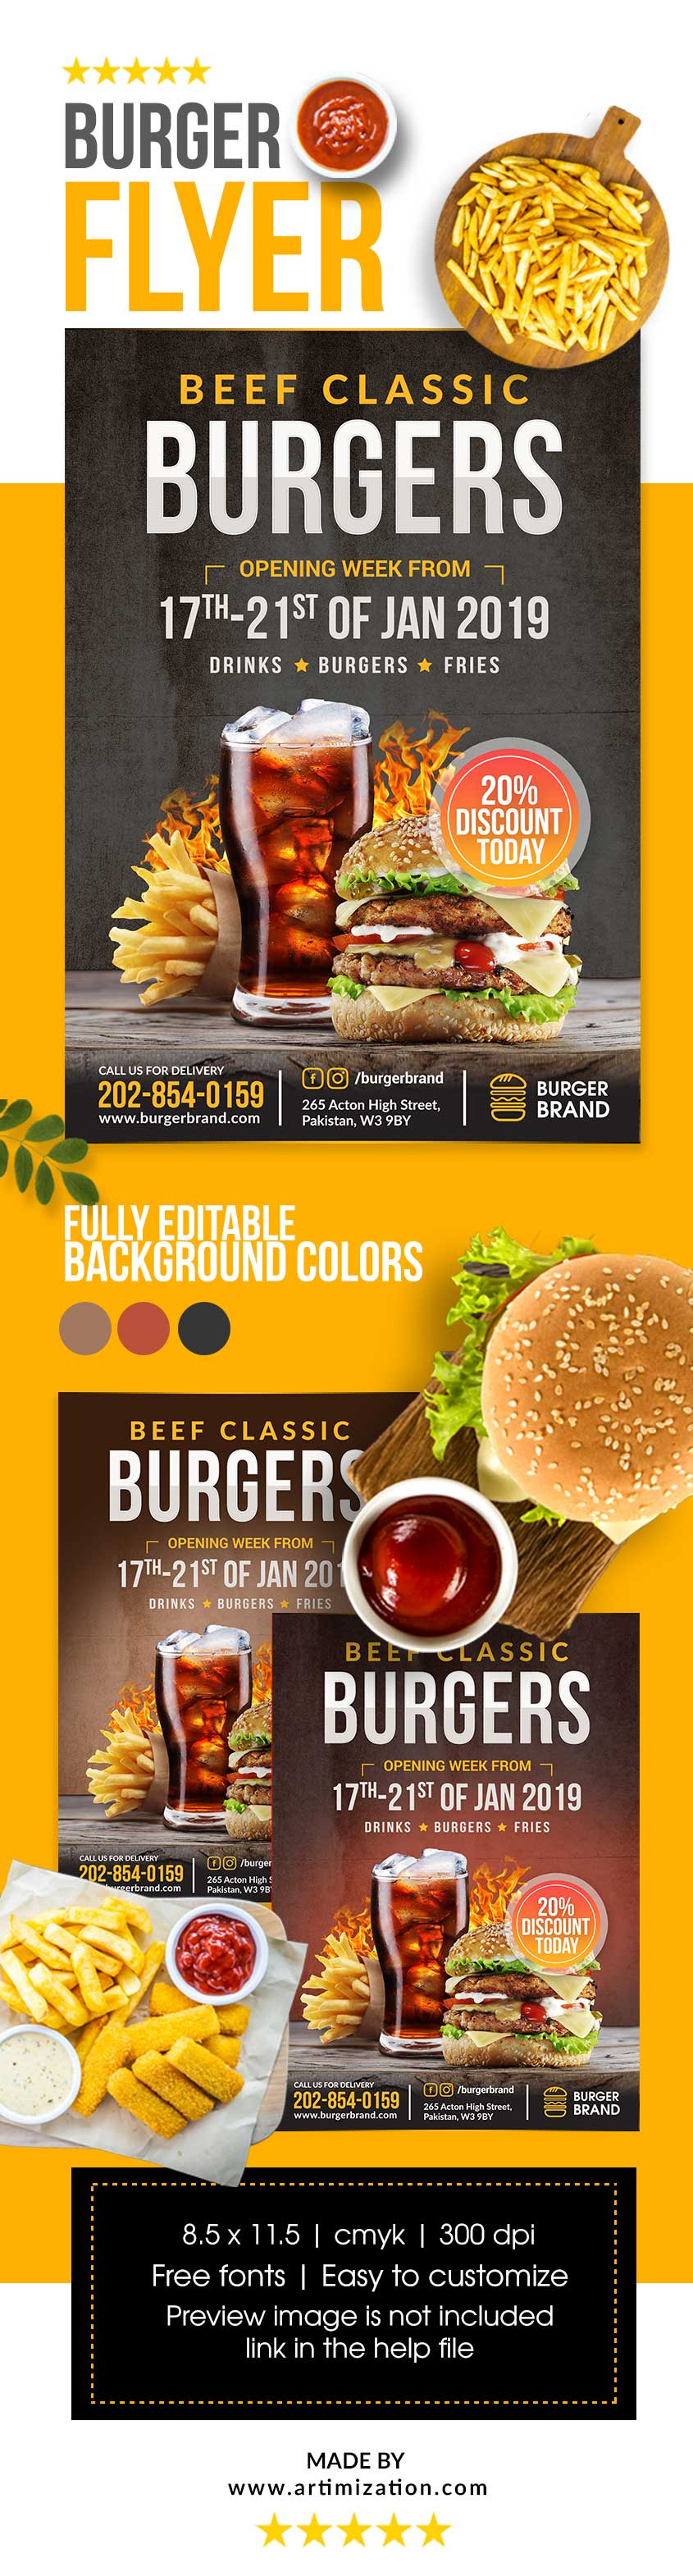 burger flyer free psd download